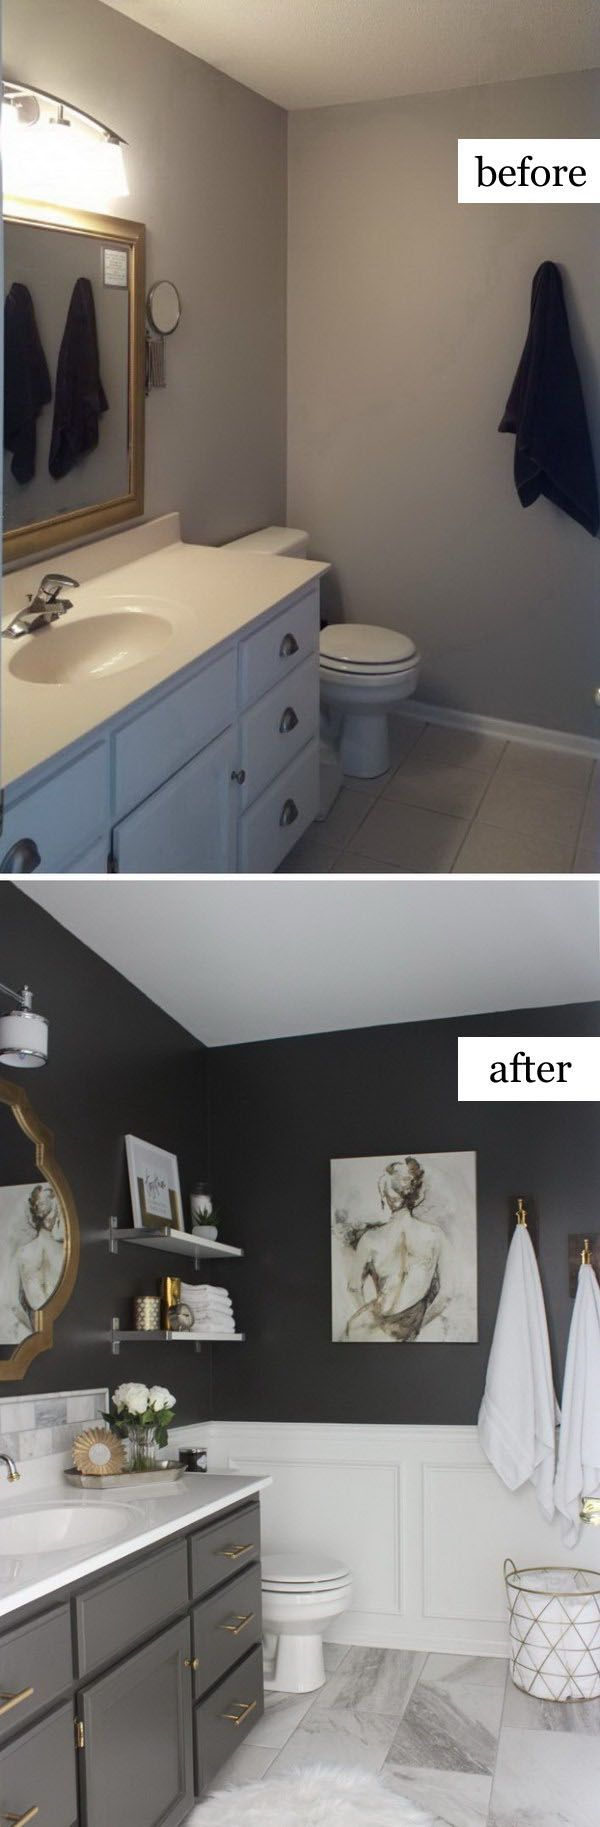 Small Bathroom Designs On Pinterest best 20+ small bathroom remodeling ideas on pinterest | half